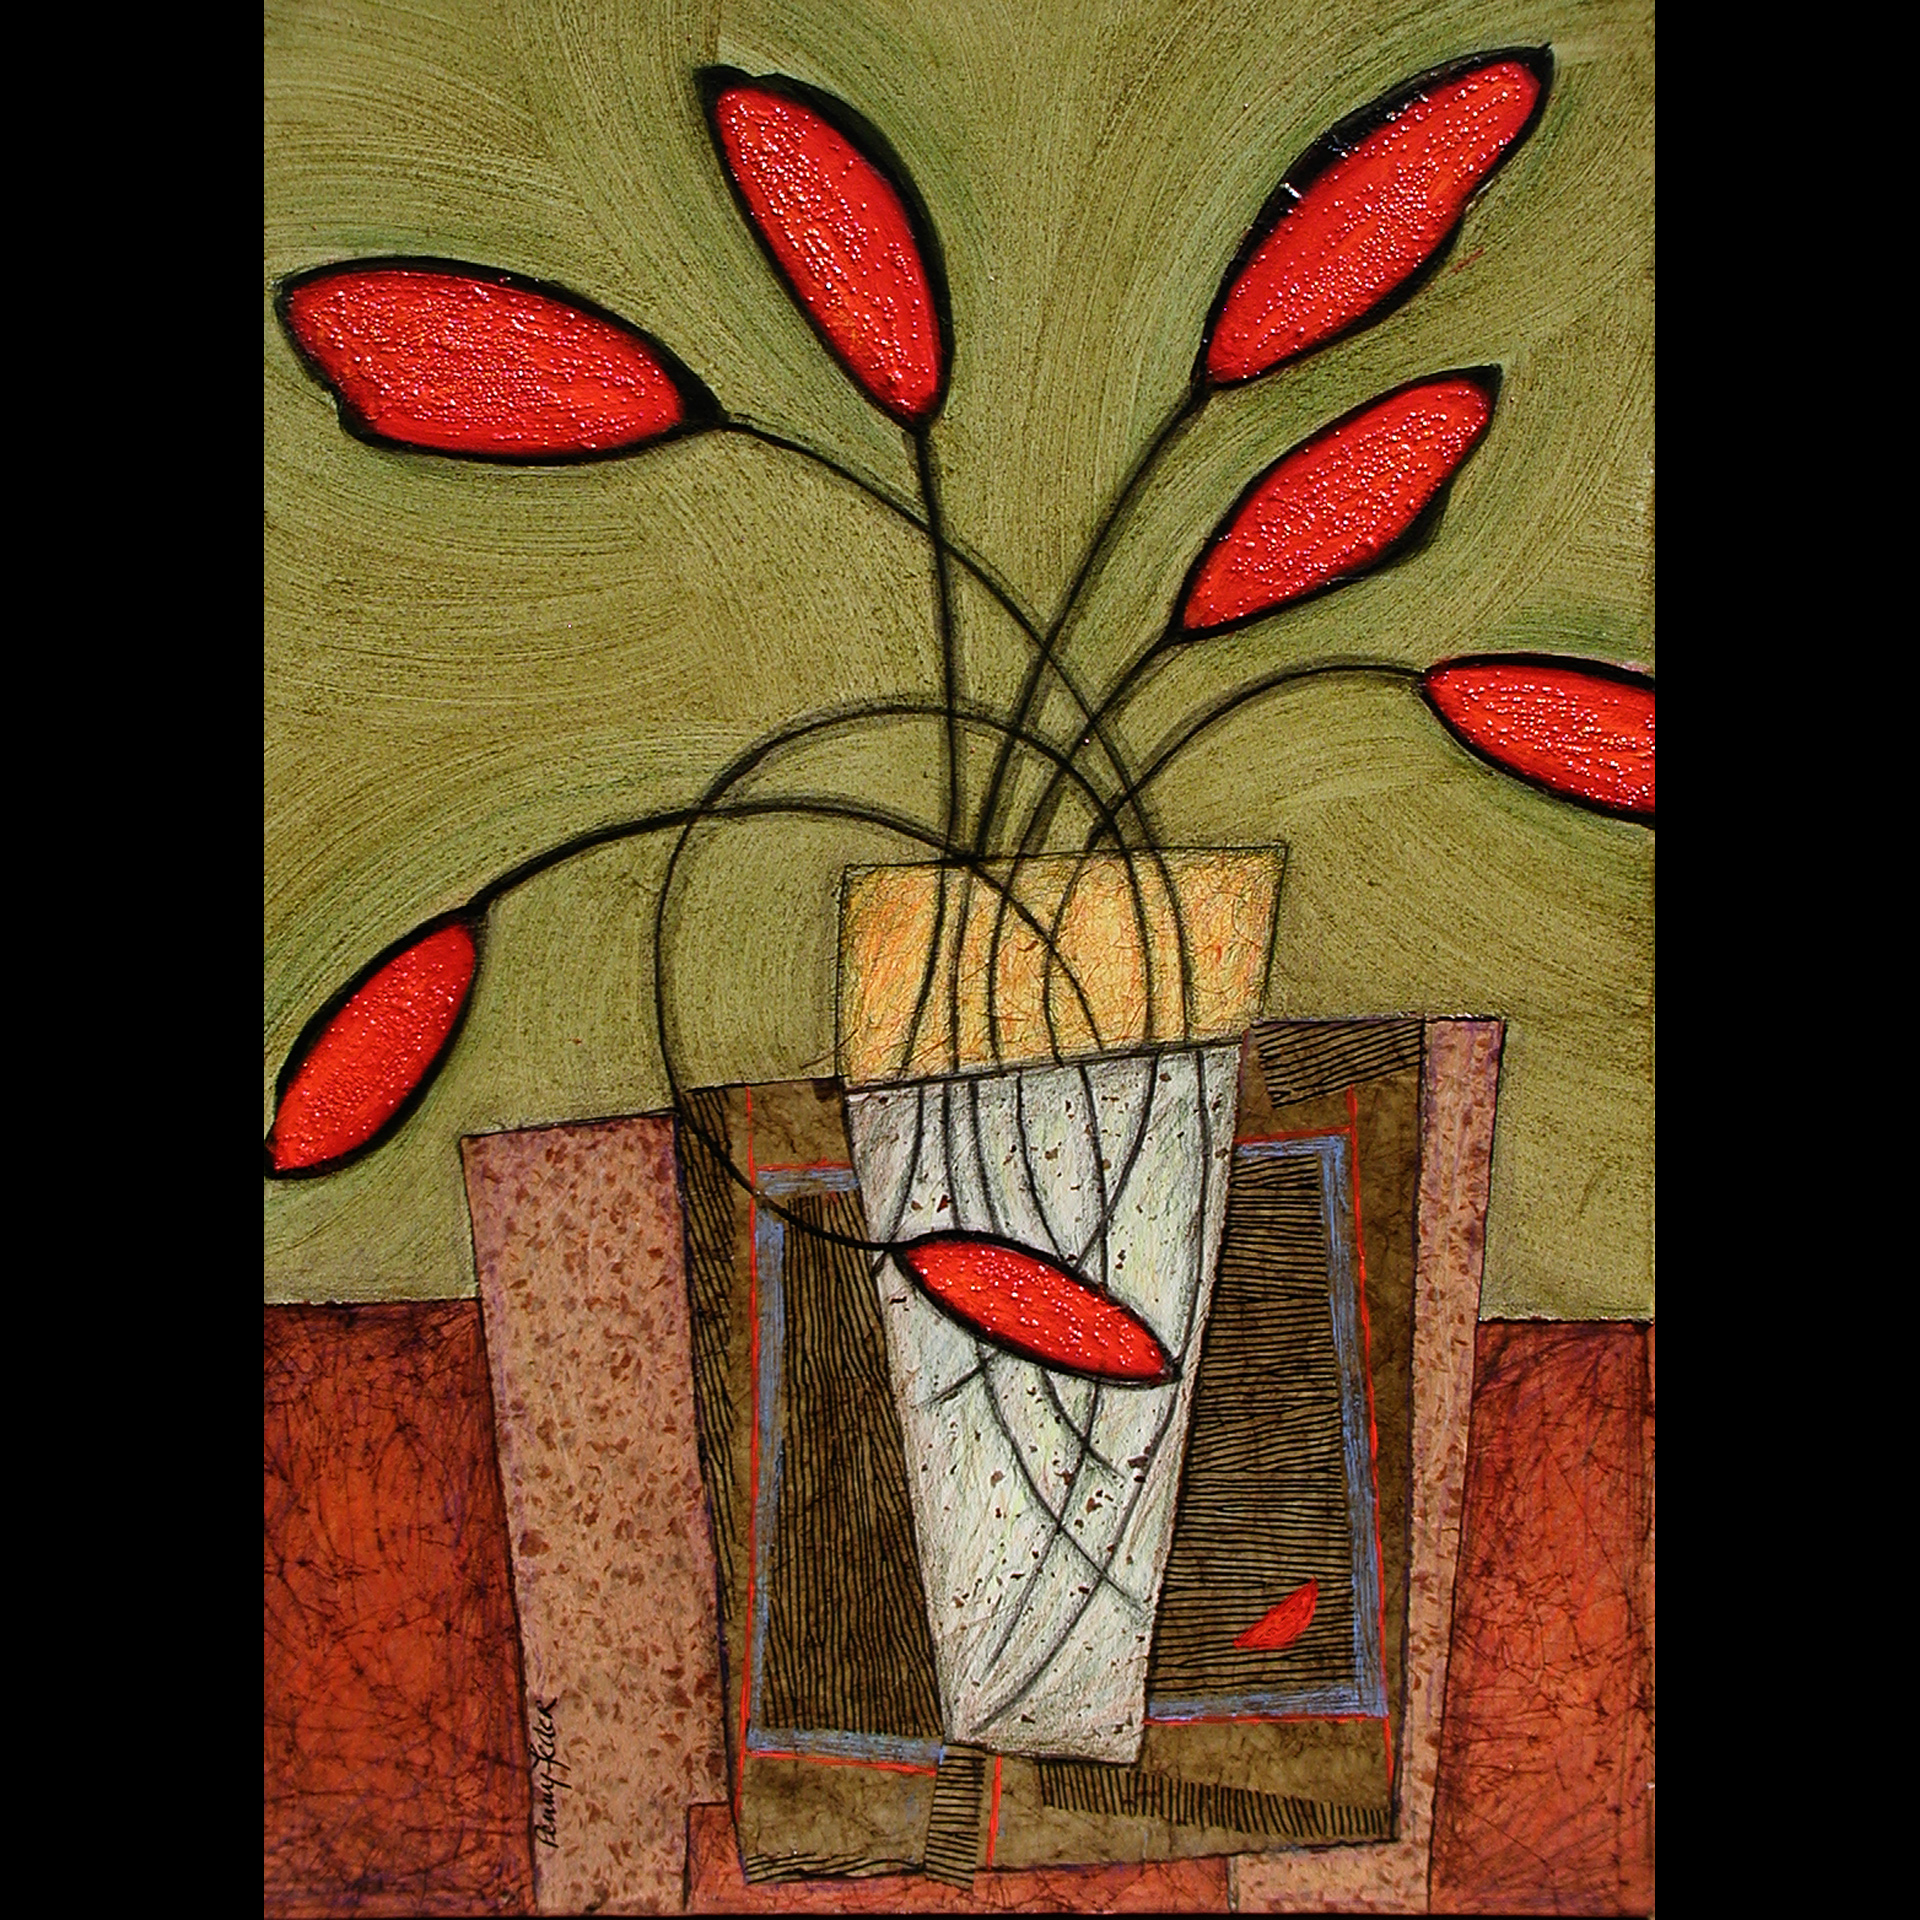 Jess's-Red-Tulips-on-Table, mixed media collage on canvas, 36x24